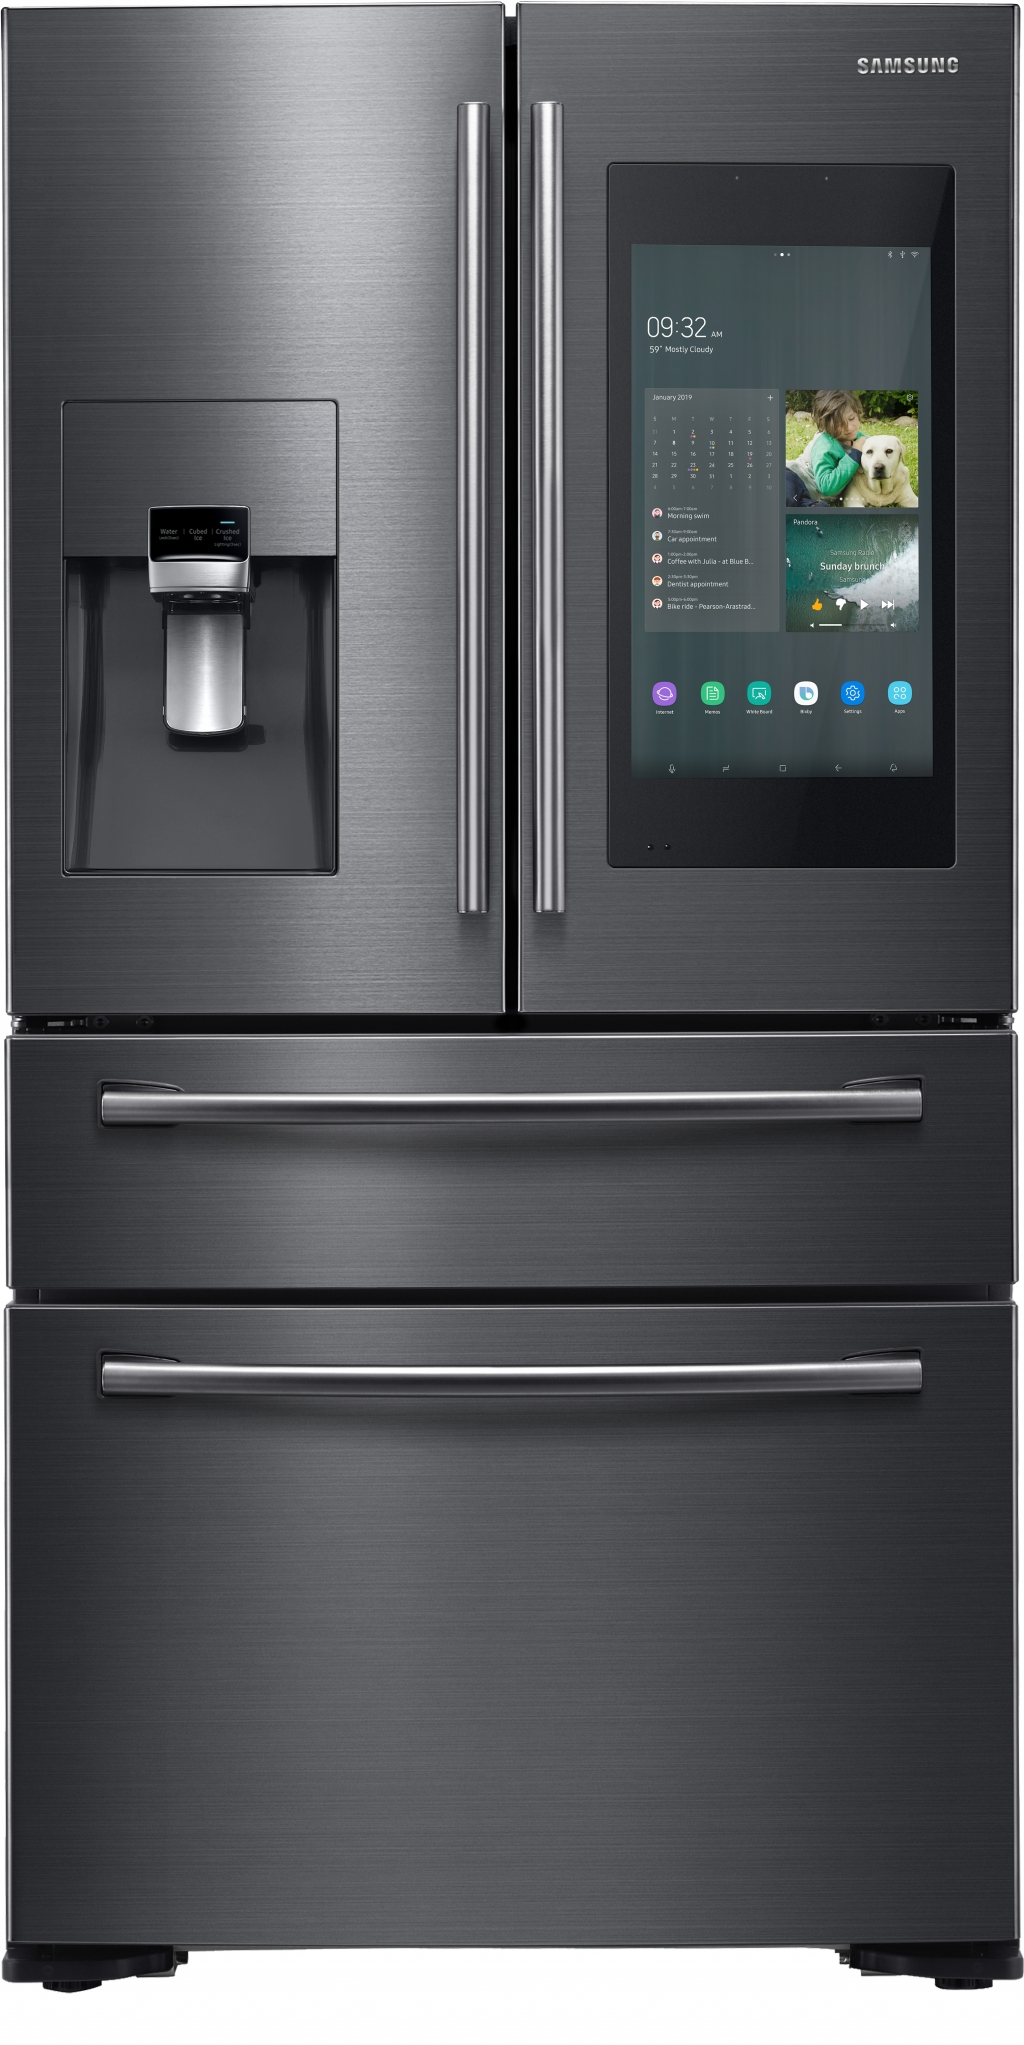 Samsung Debuts a New Standard in Connectivity with Next Generation of Family Hub Refrigerator at CES 2019